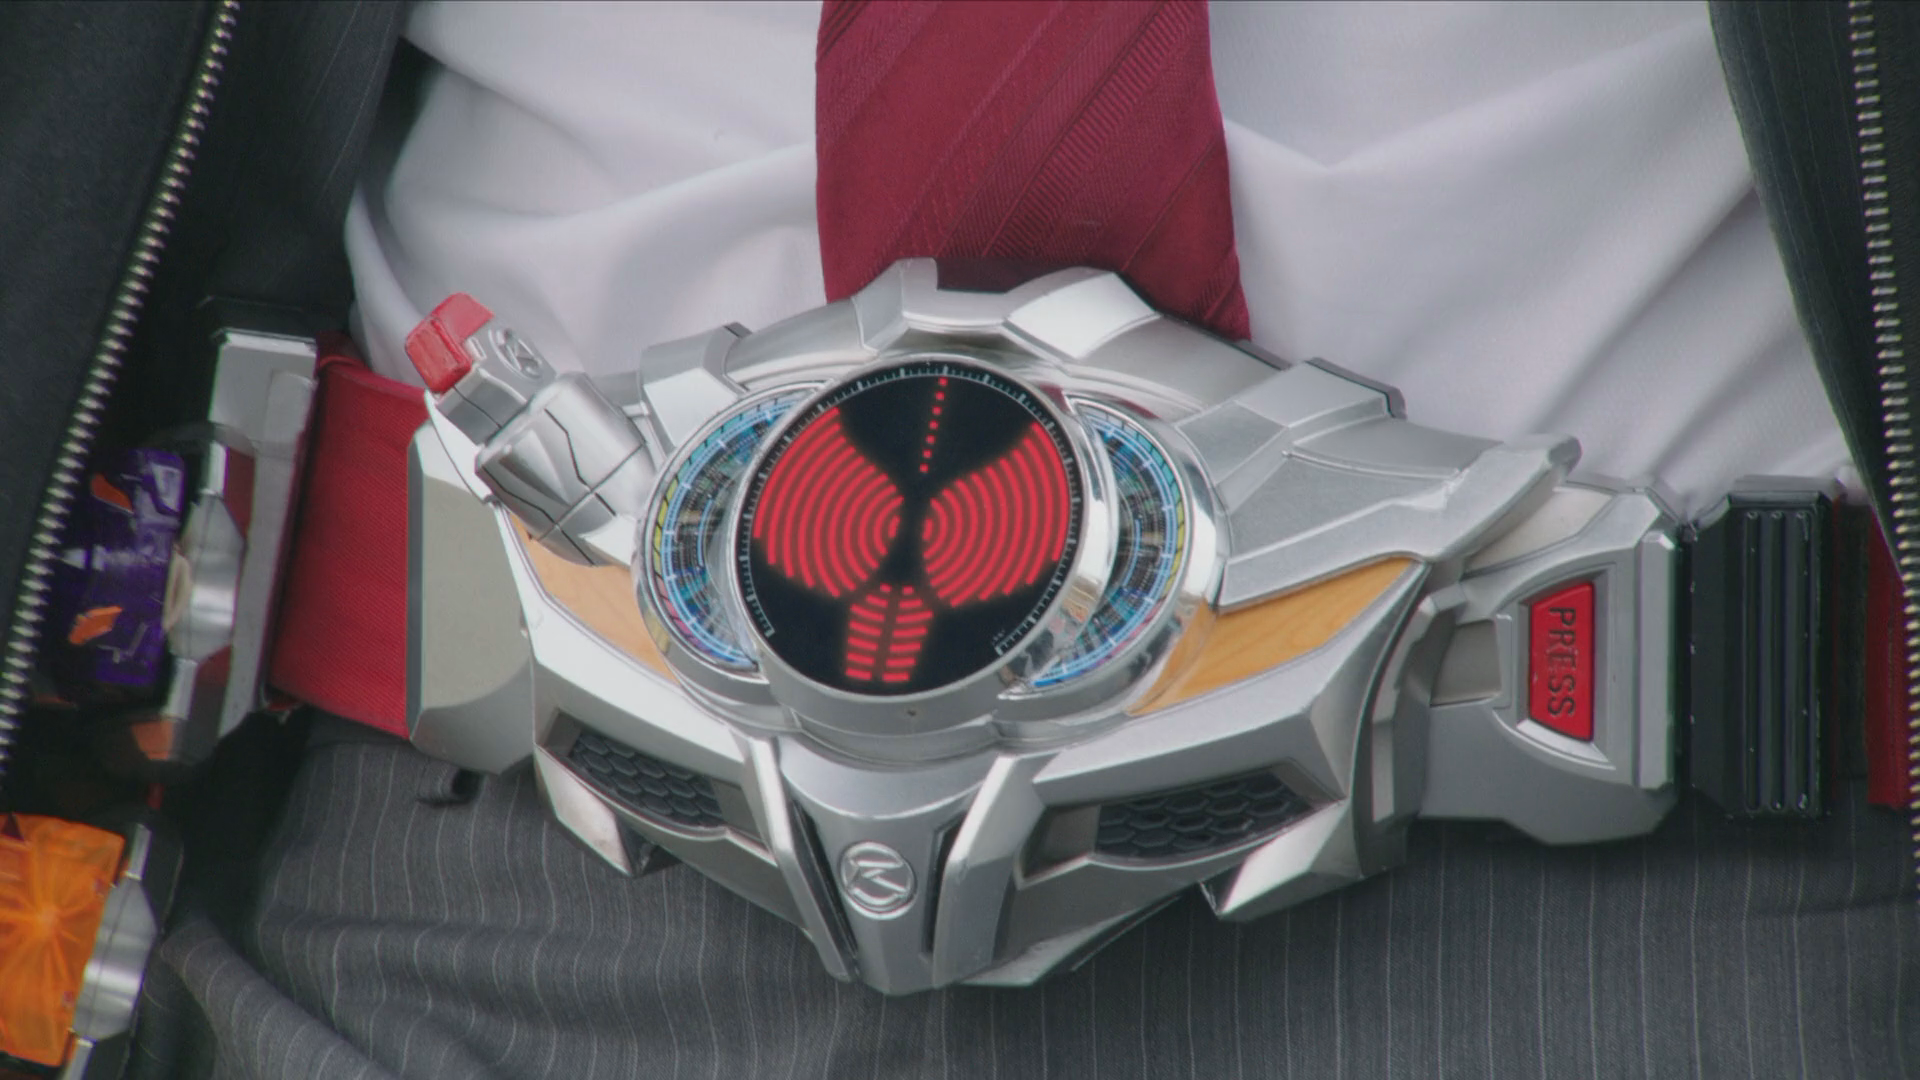 Krim Steinbelt | Kamen Rider Wiki | FANDOM powered by Wikia